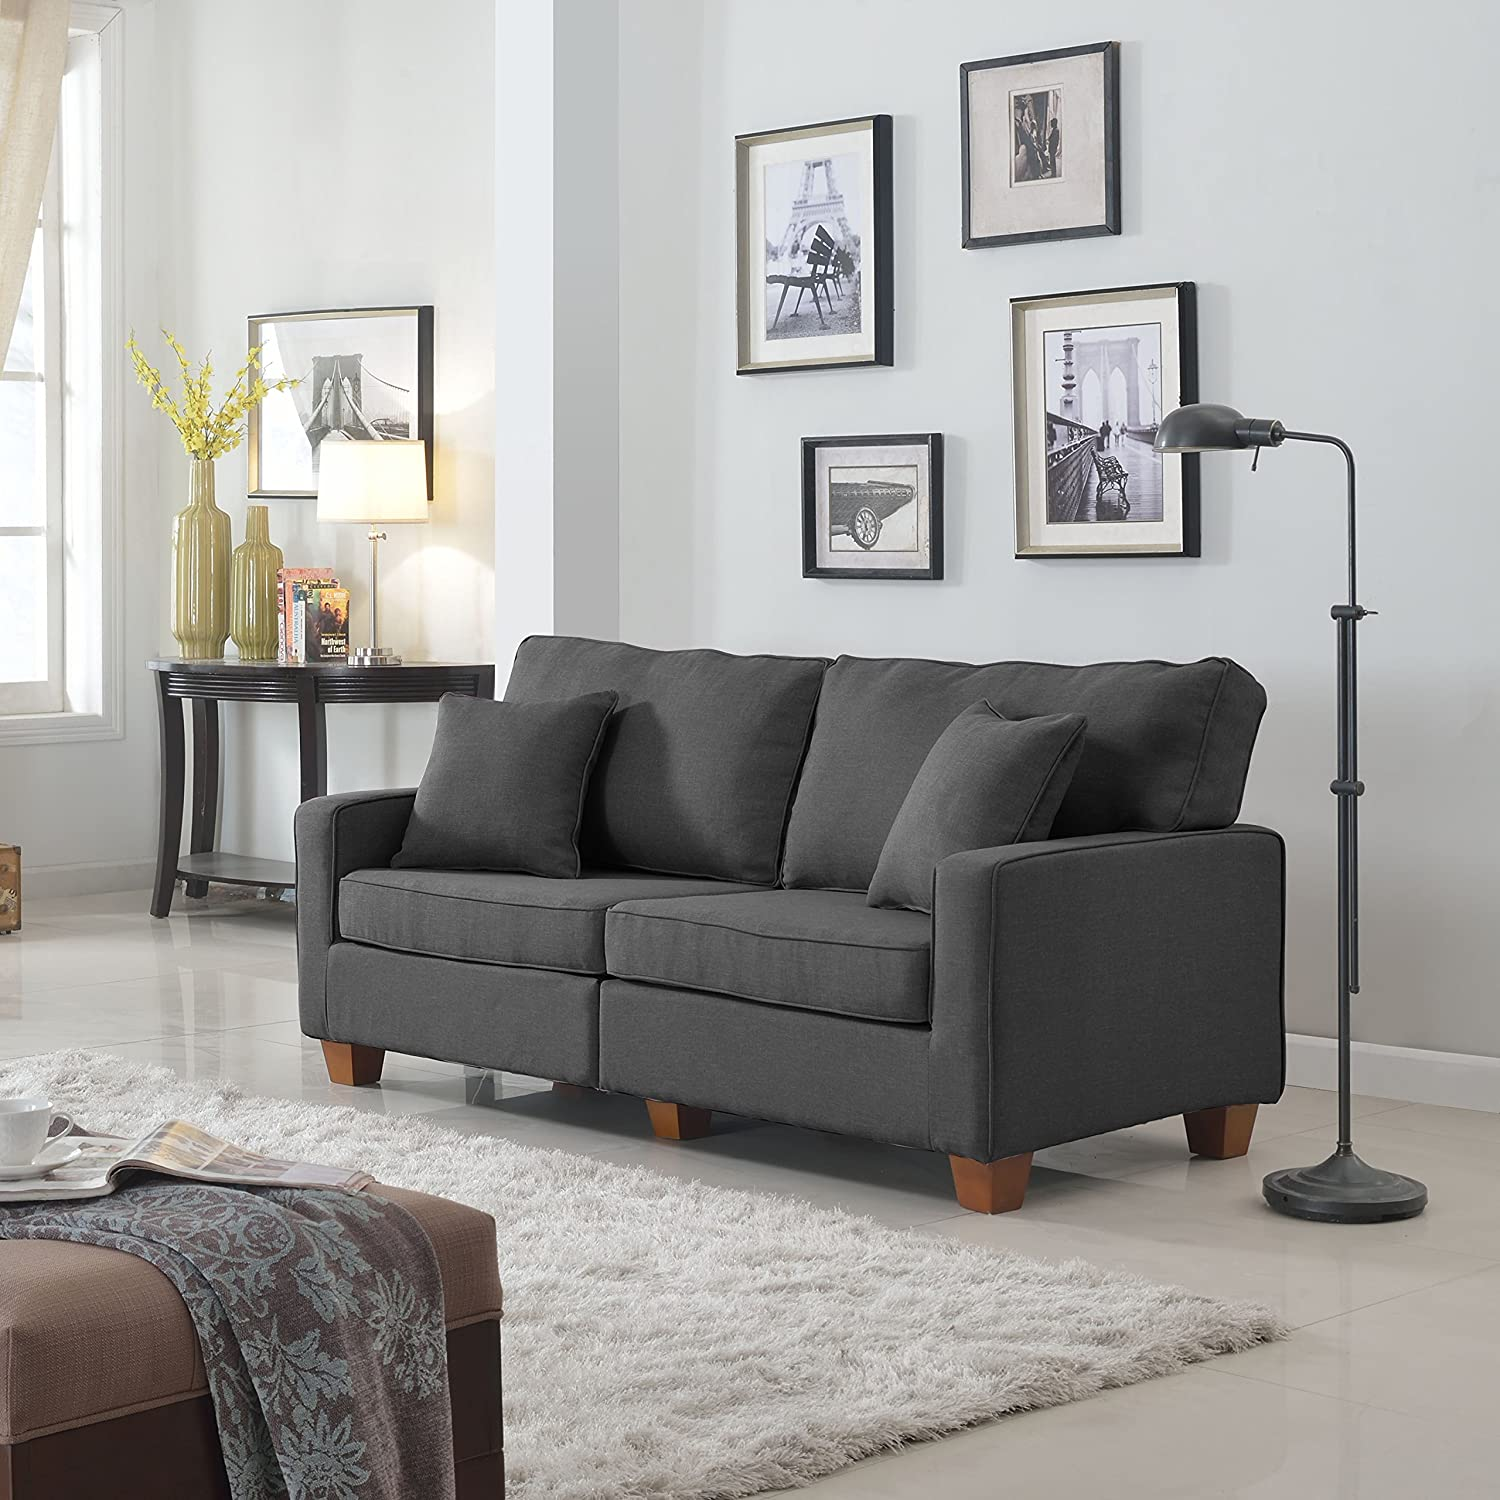 DIVANO ROMA FURNITURE Classic 73-inch Love Seat Living Room Linen Fabric  Sofa (Dark Grey)